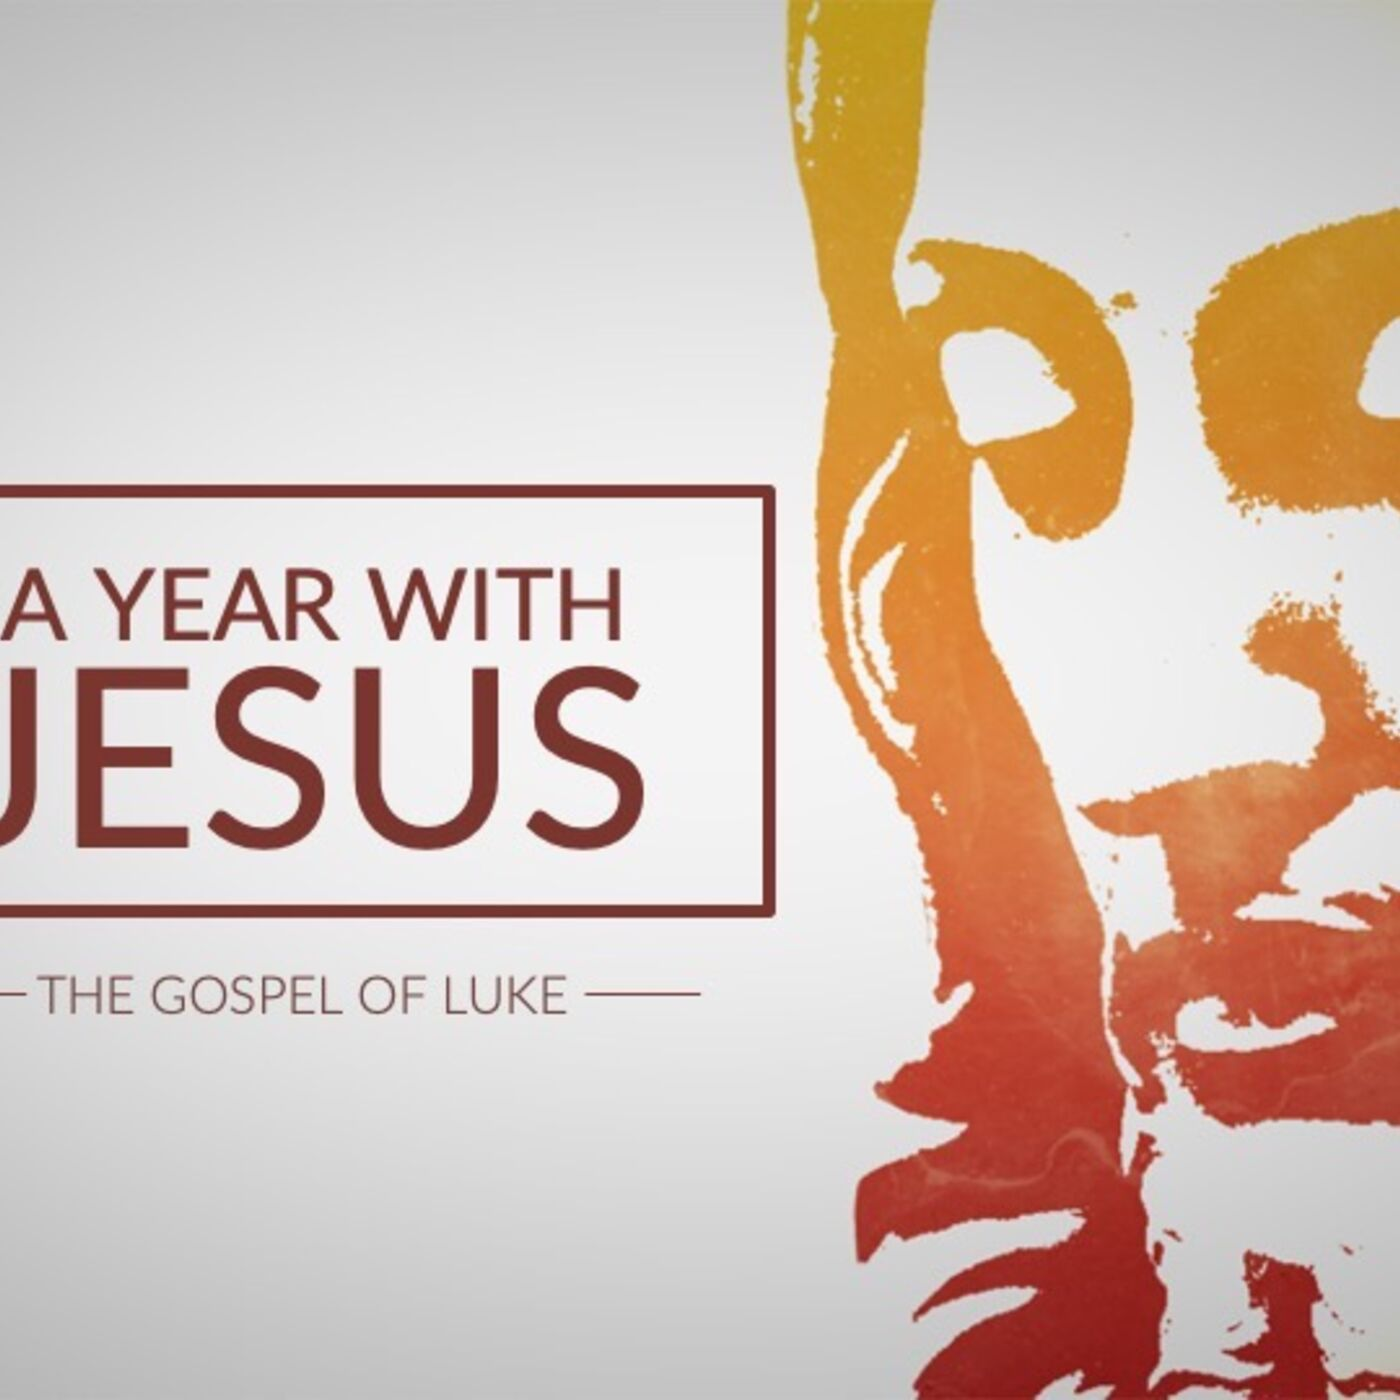 A Year With Jesus: Do Not Be Anxious (Luke 12:22-34)